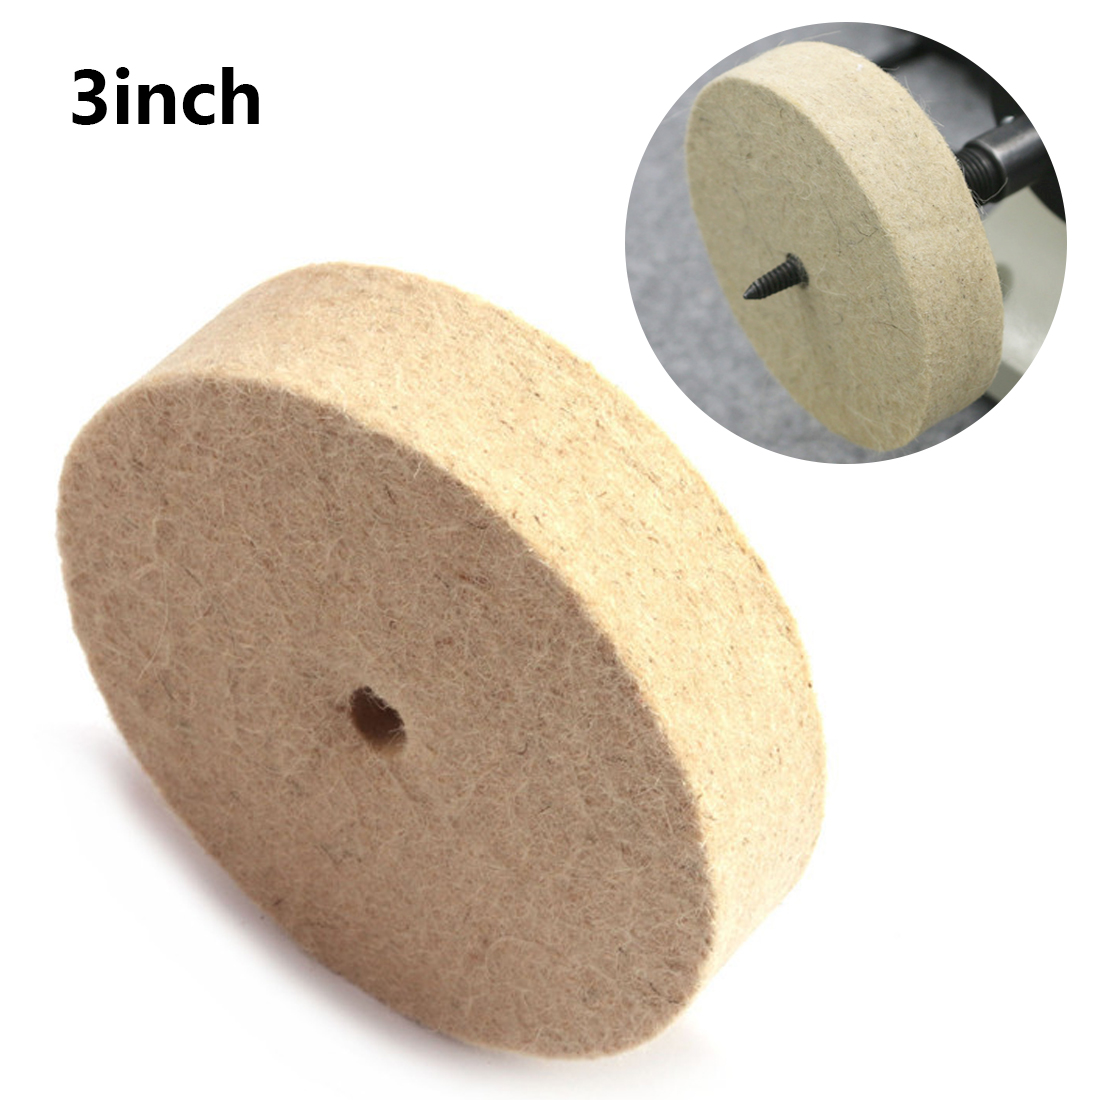 Admirable Abrasive Disc 3 Inch 80Mm Drill Grinding Wheel Buffing Wheel Felt Wool Polishing Pad For Bench Grinder Rotary Tool Ocoug Best Dining Table And Chair Ideas Images Ocougorg